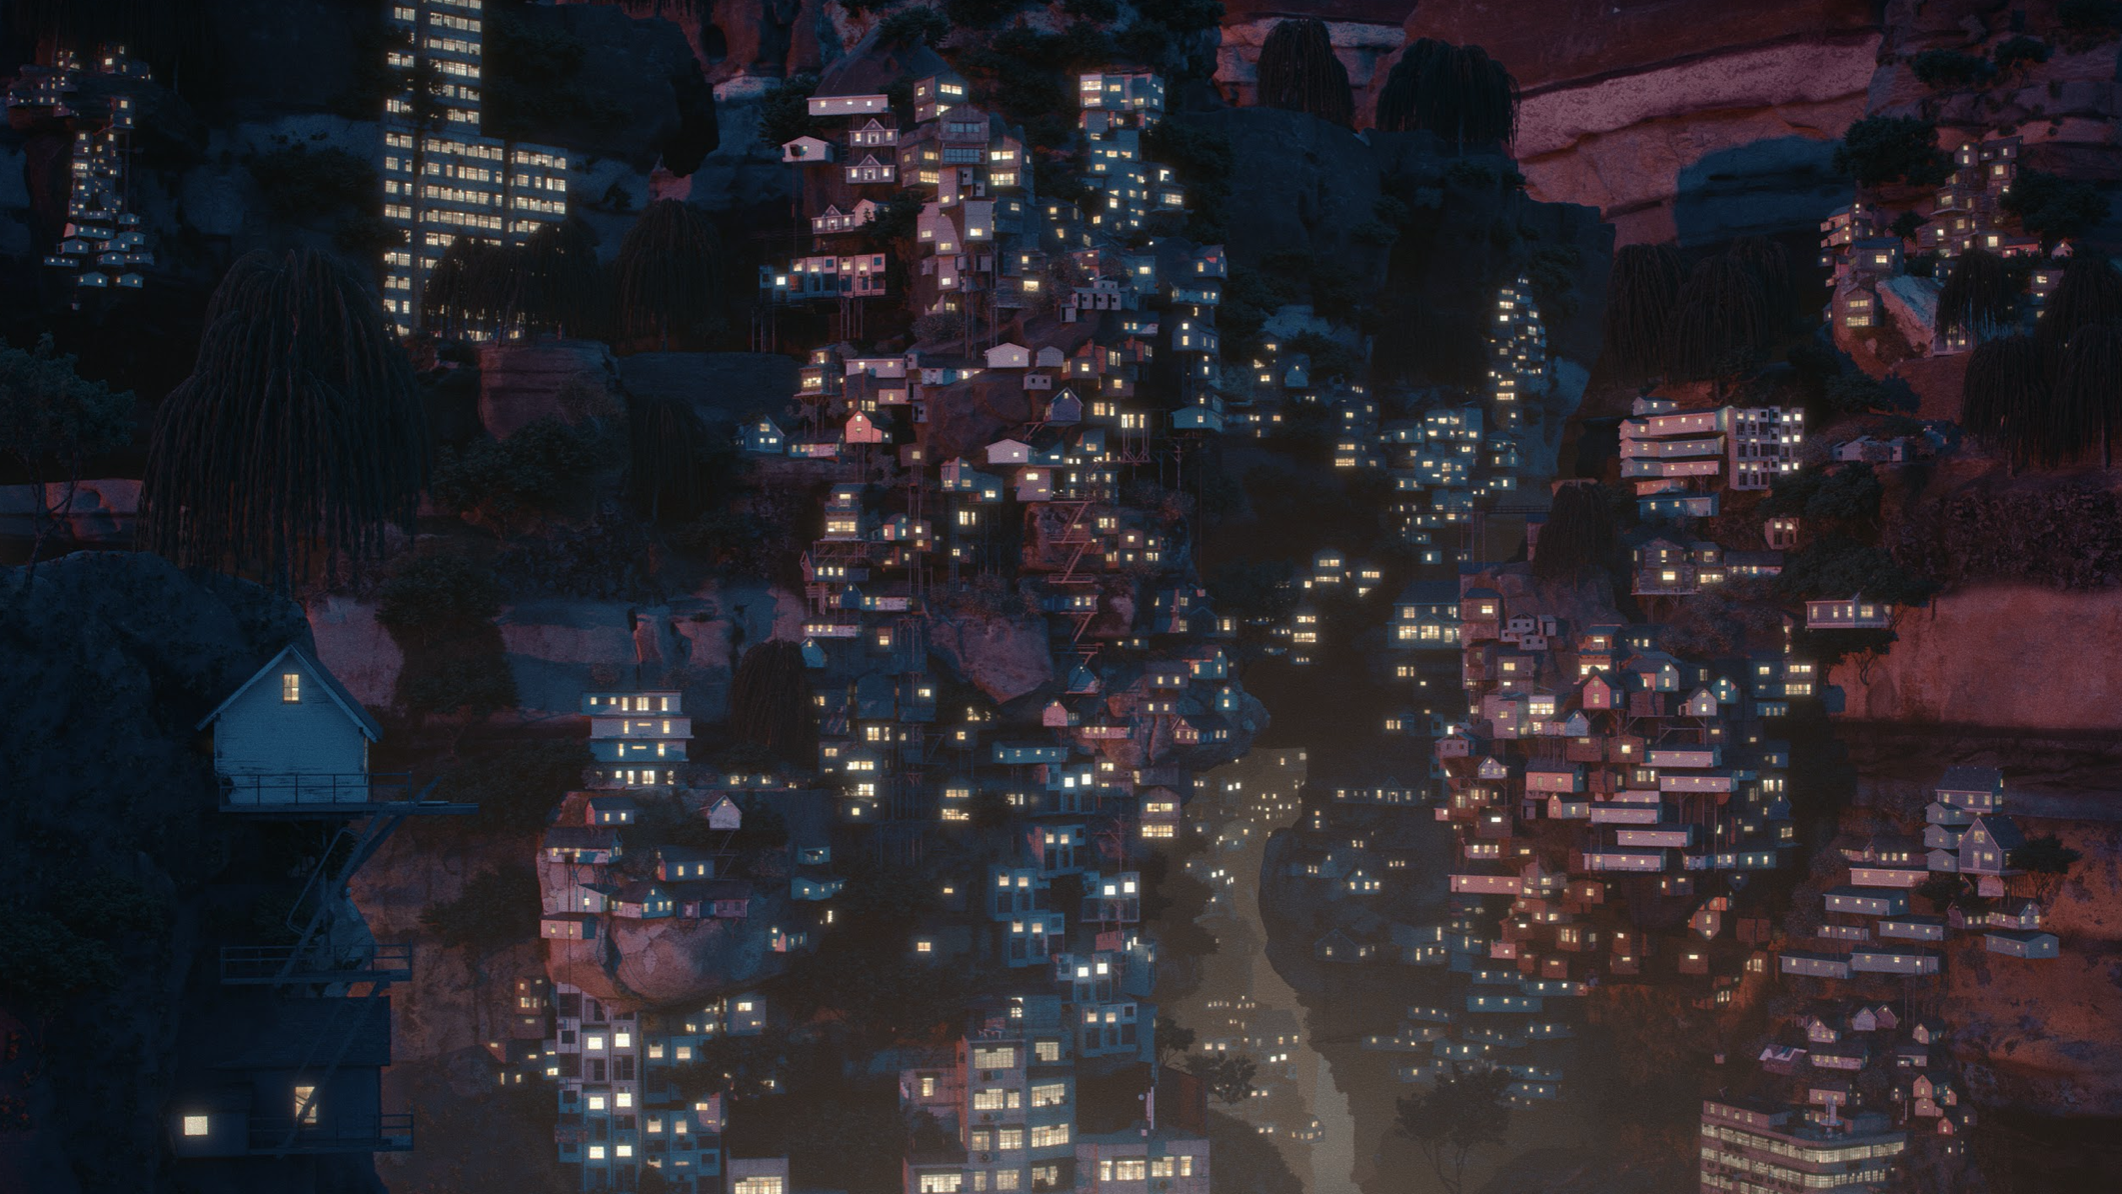 Digital still from 'Planet City' by Liam Young